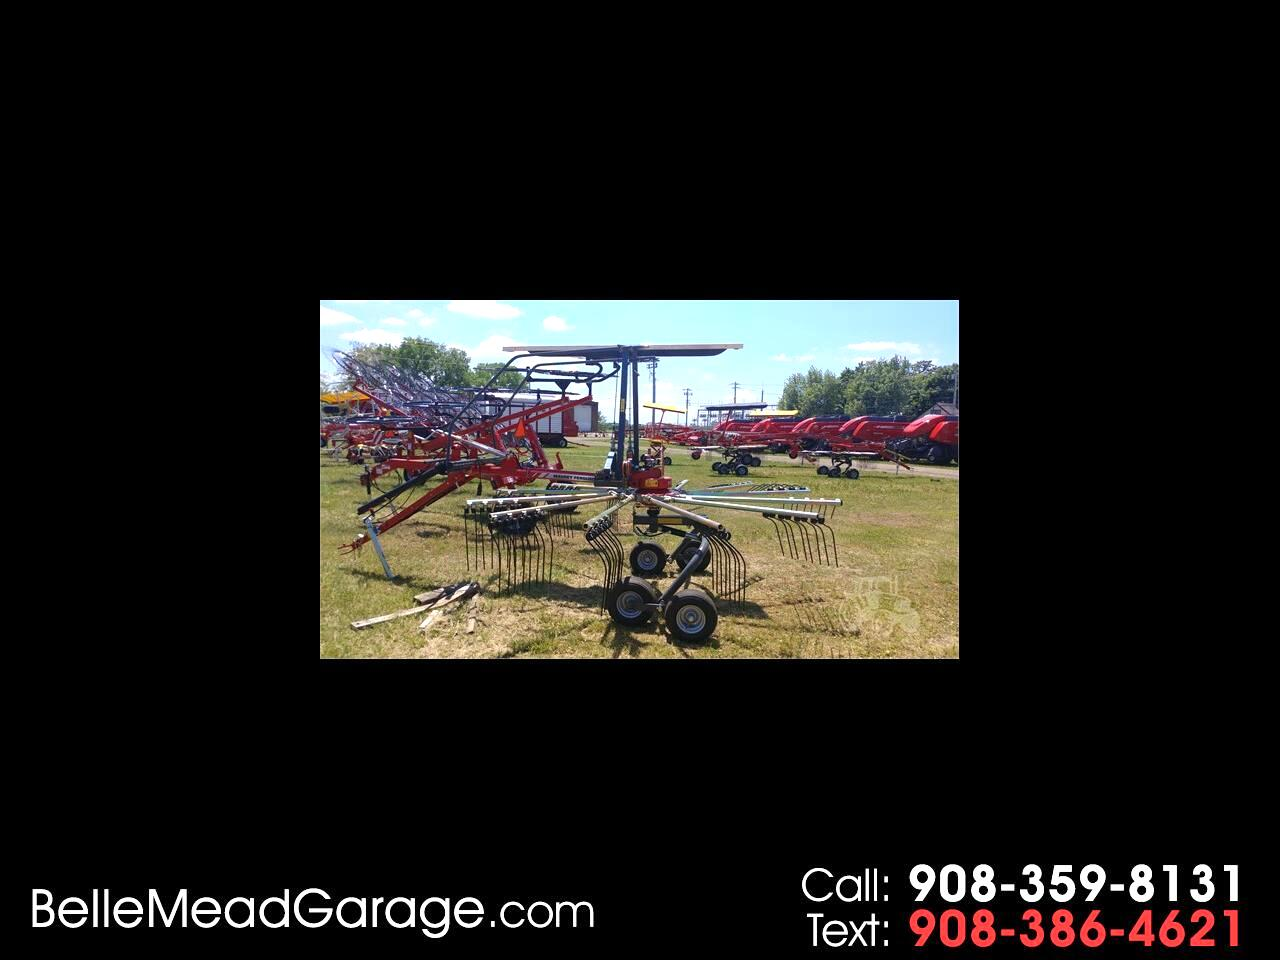 2019 Massey Ferguson Farm RK 451 TR SINGLE ROTOR HAY RAKE